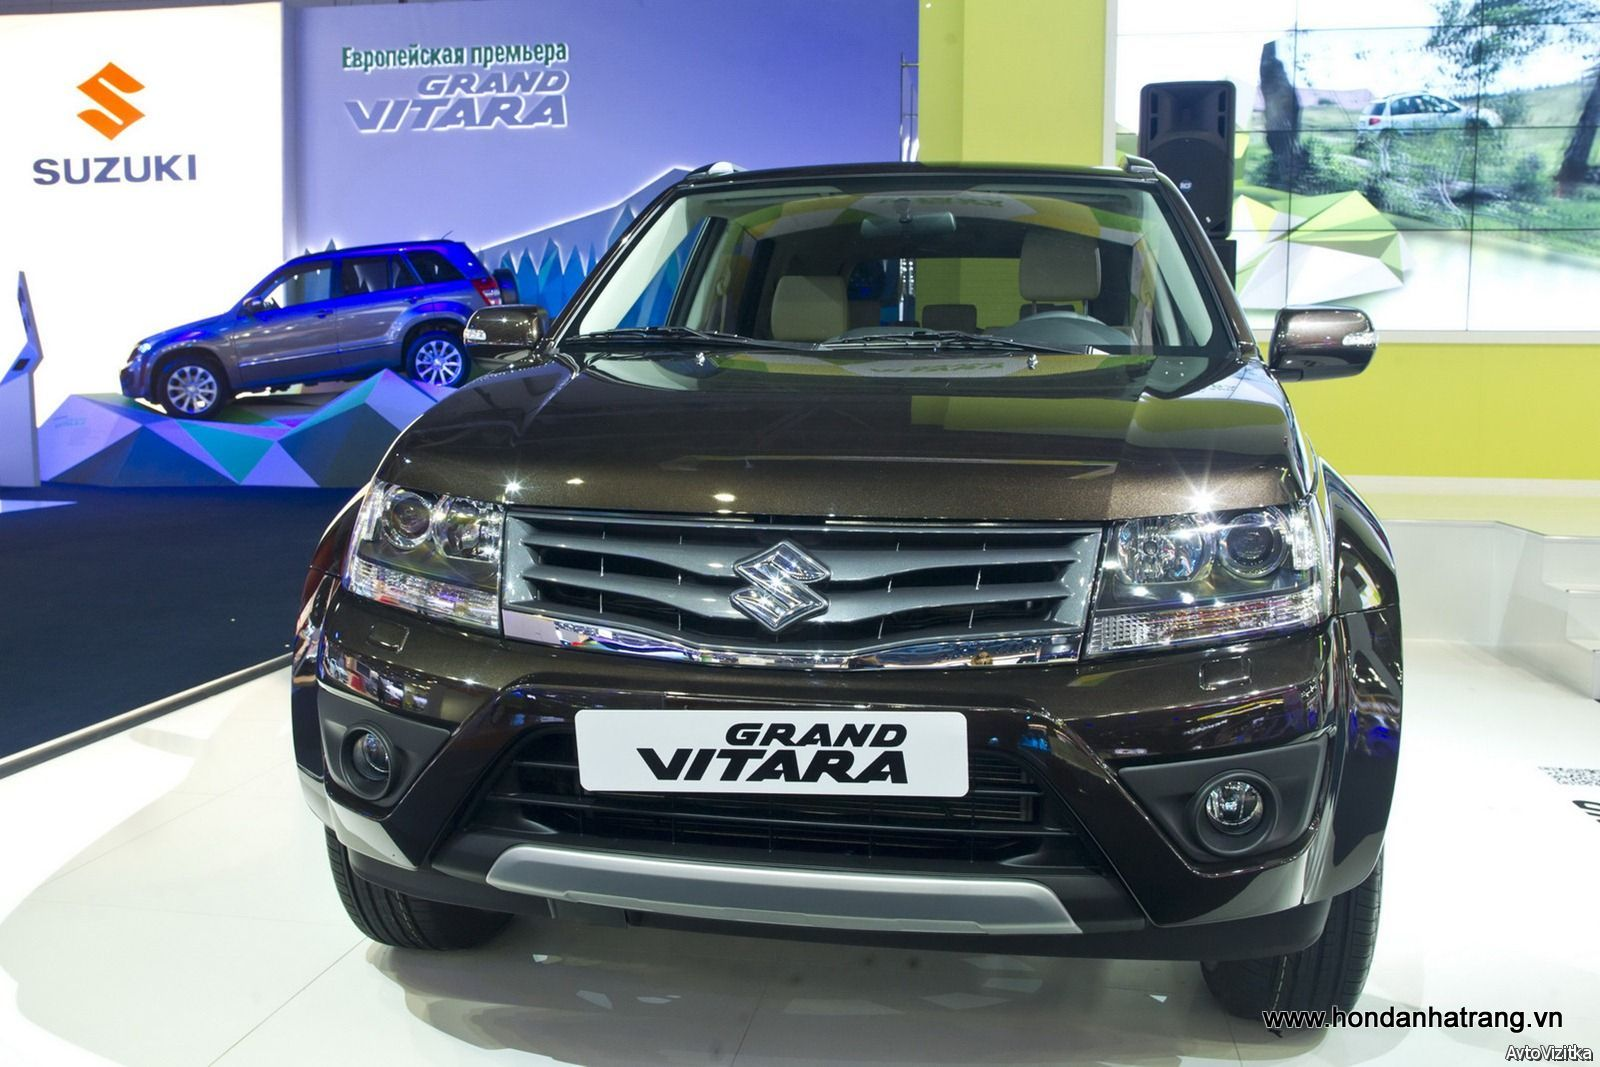 New Suzuki Grand Vitara 2016 Black Color For Sale At Auto Show